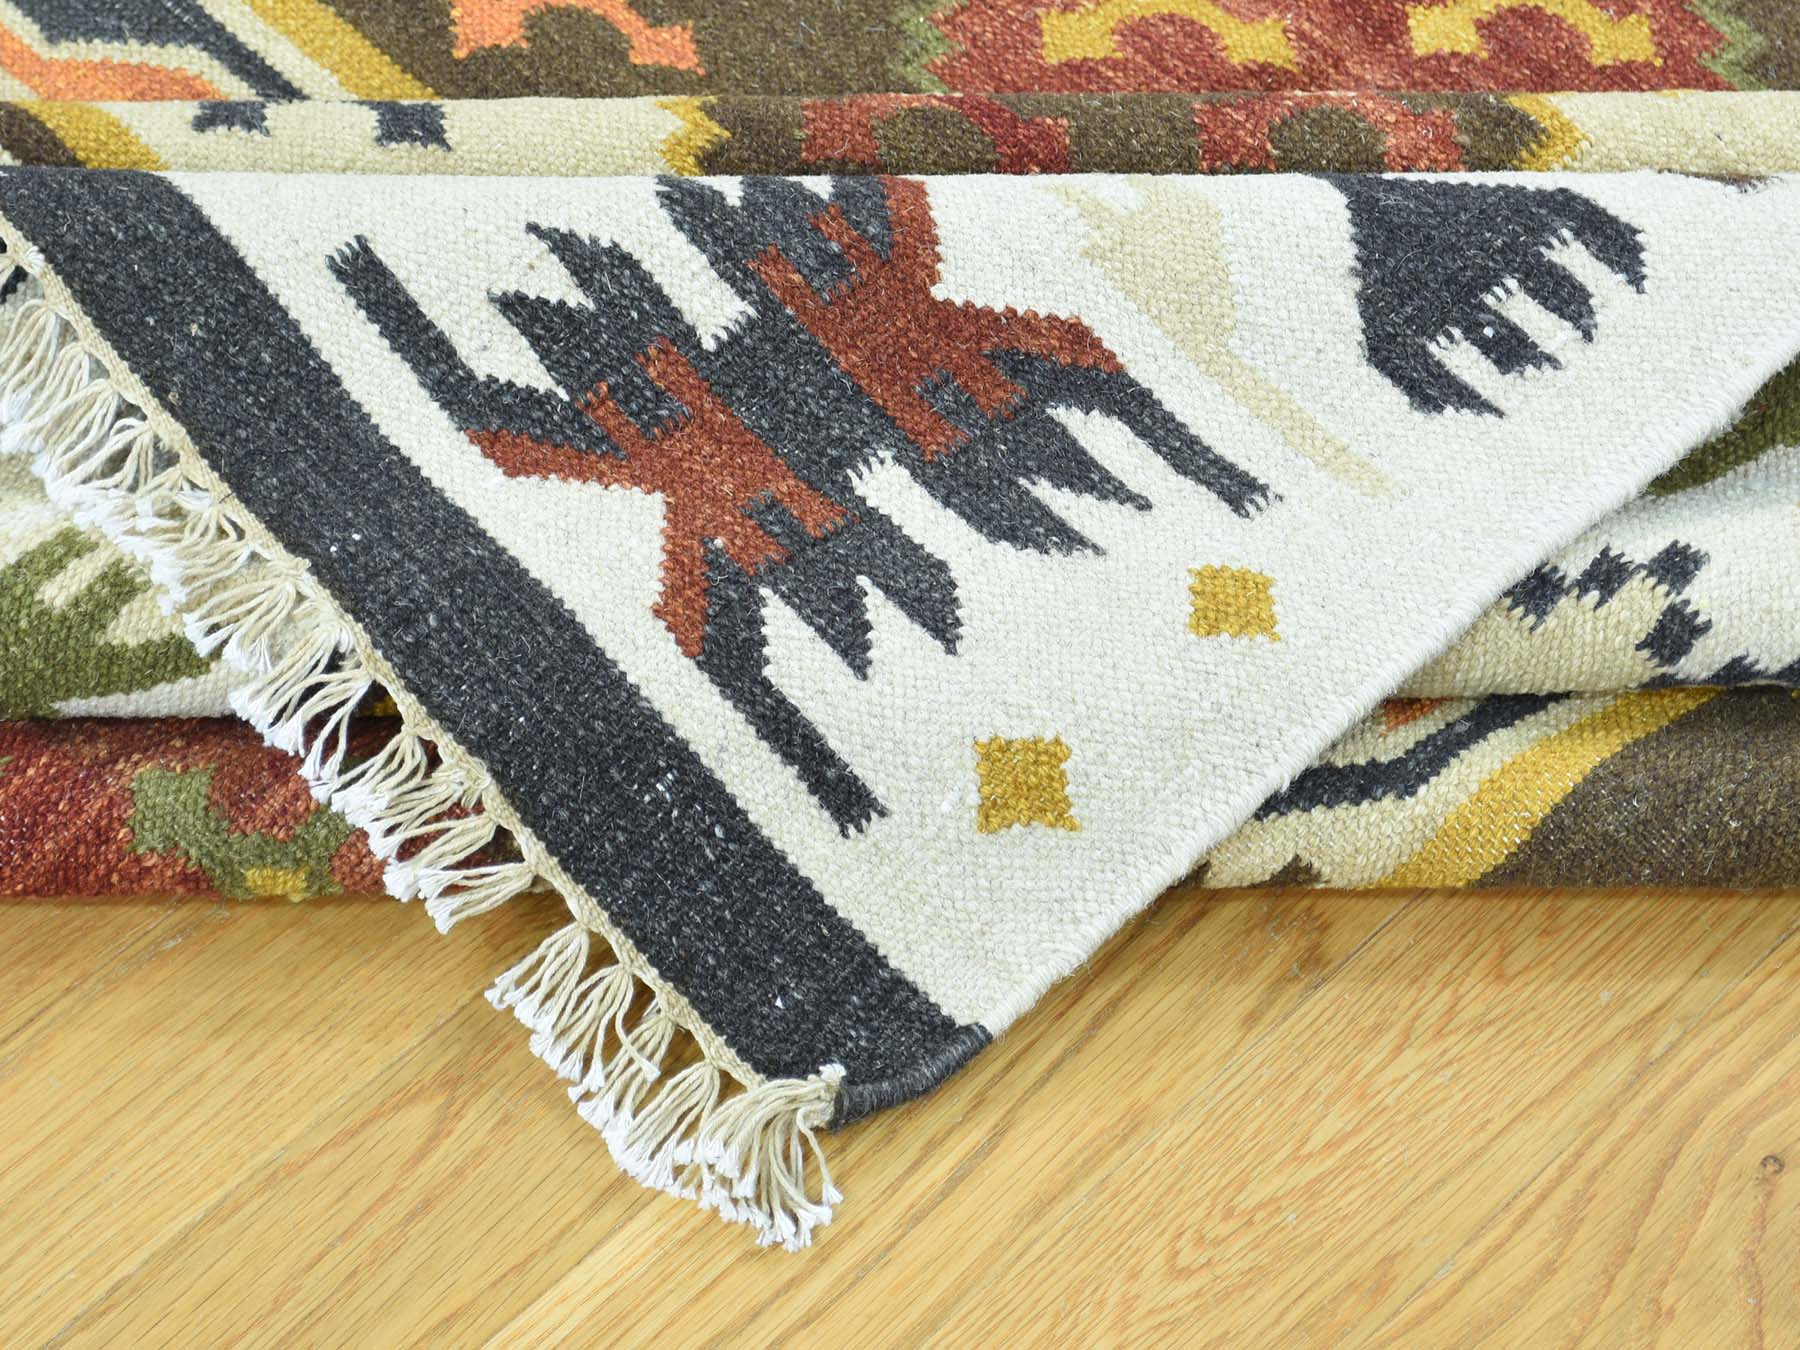 Perfect Example of a Beautiful Kilim Hand-Woven Rug Motif and Weave